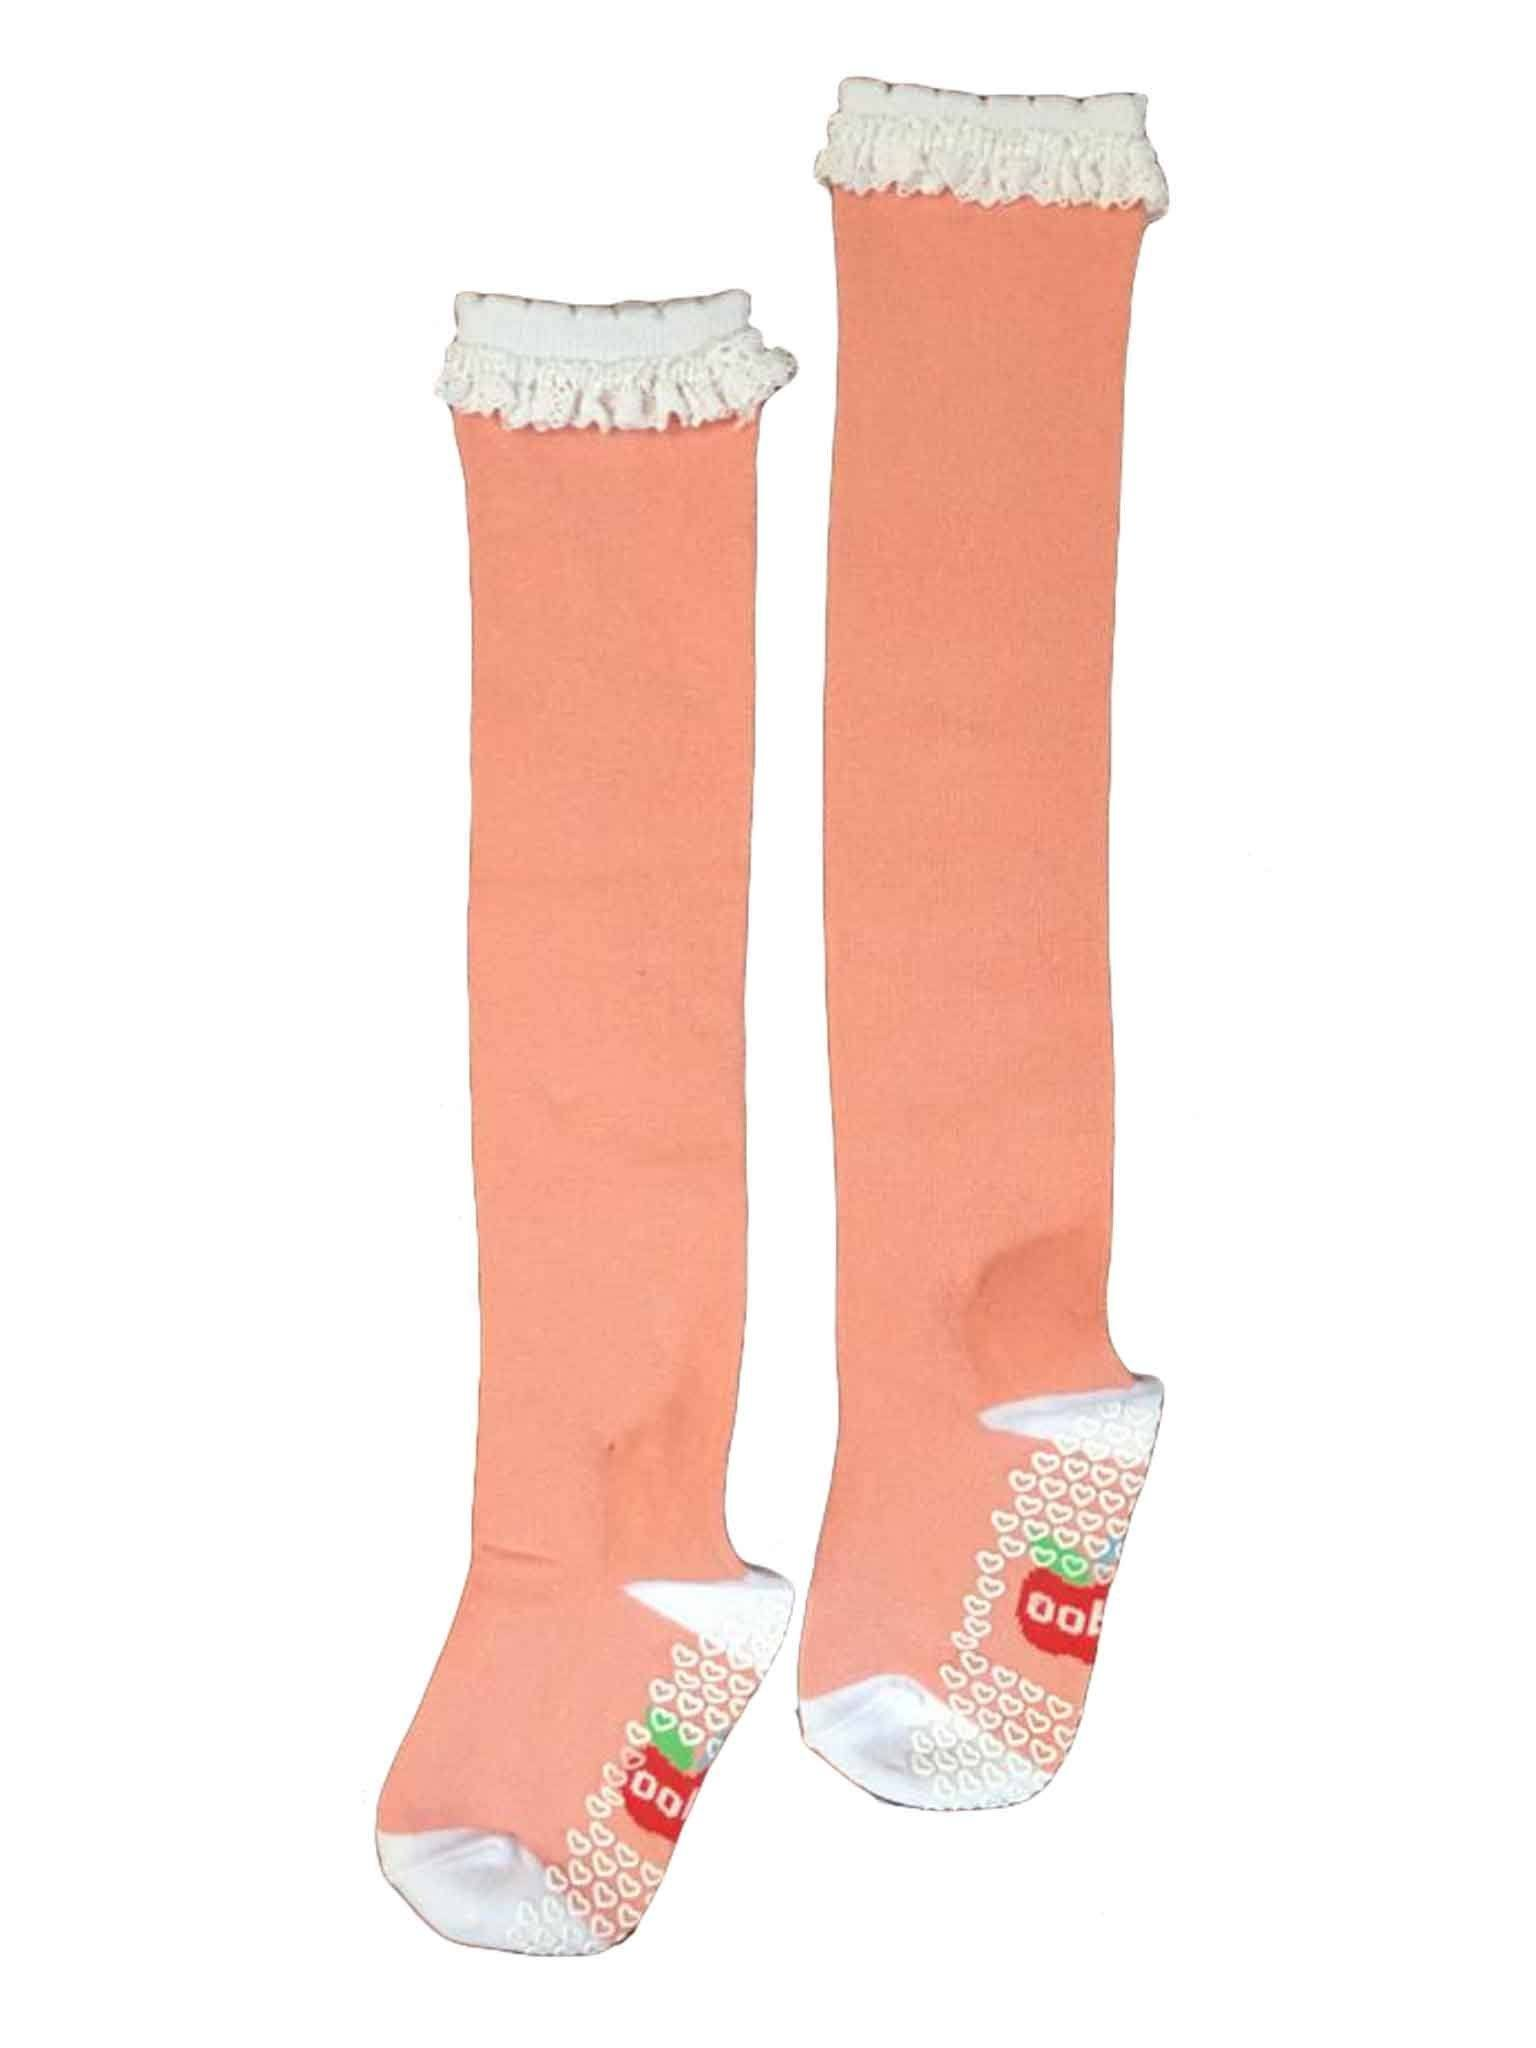 Over the Knee Blush Lacy Socks, Socks and Tights - Oobi Girls Kid Fashion